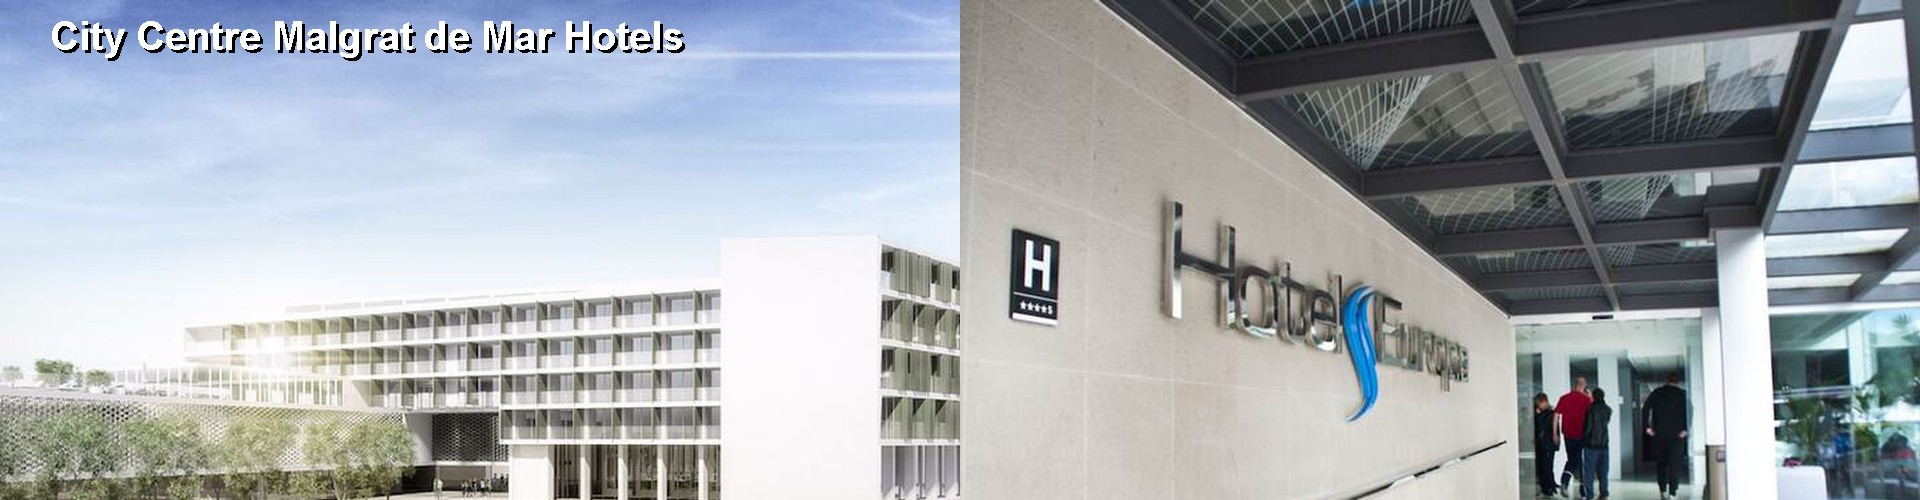 5 Best Hotels near City Centre Malgrat de Mar